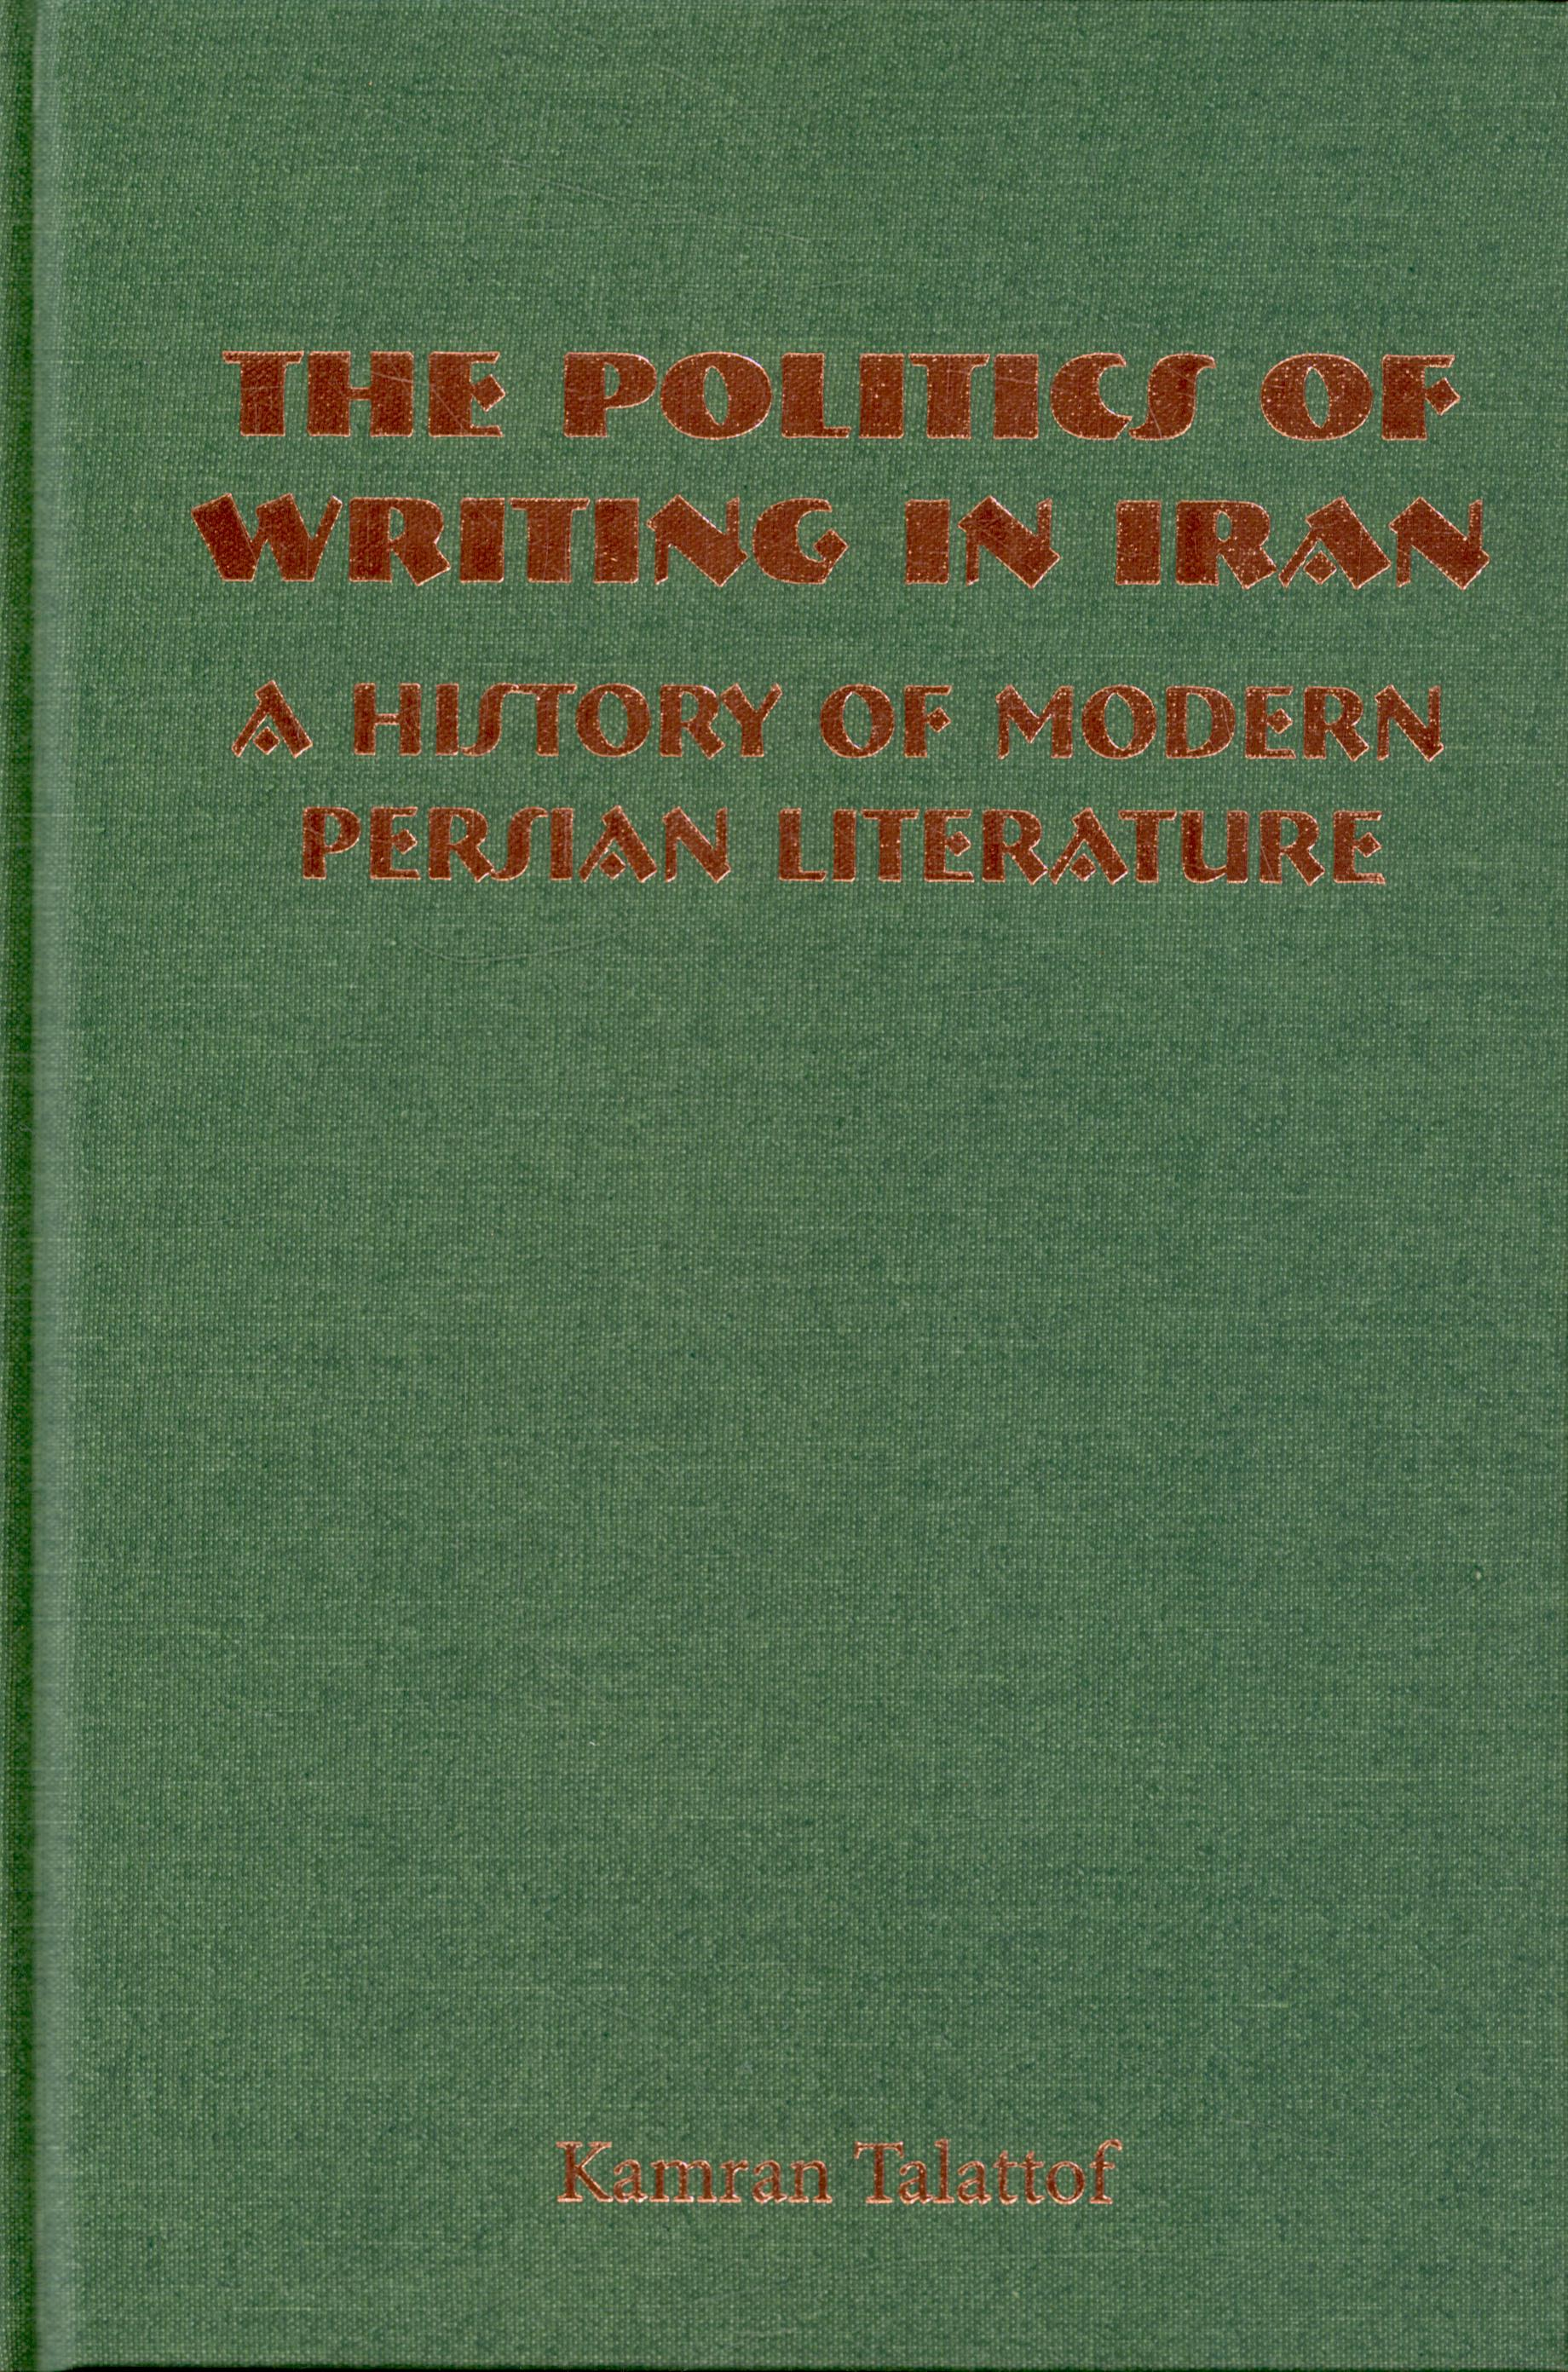 The Politics of Writing in Iran of literary change in